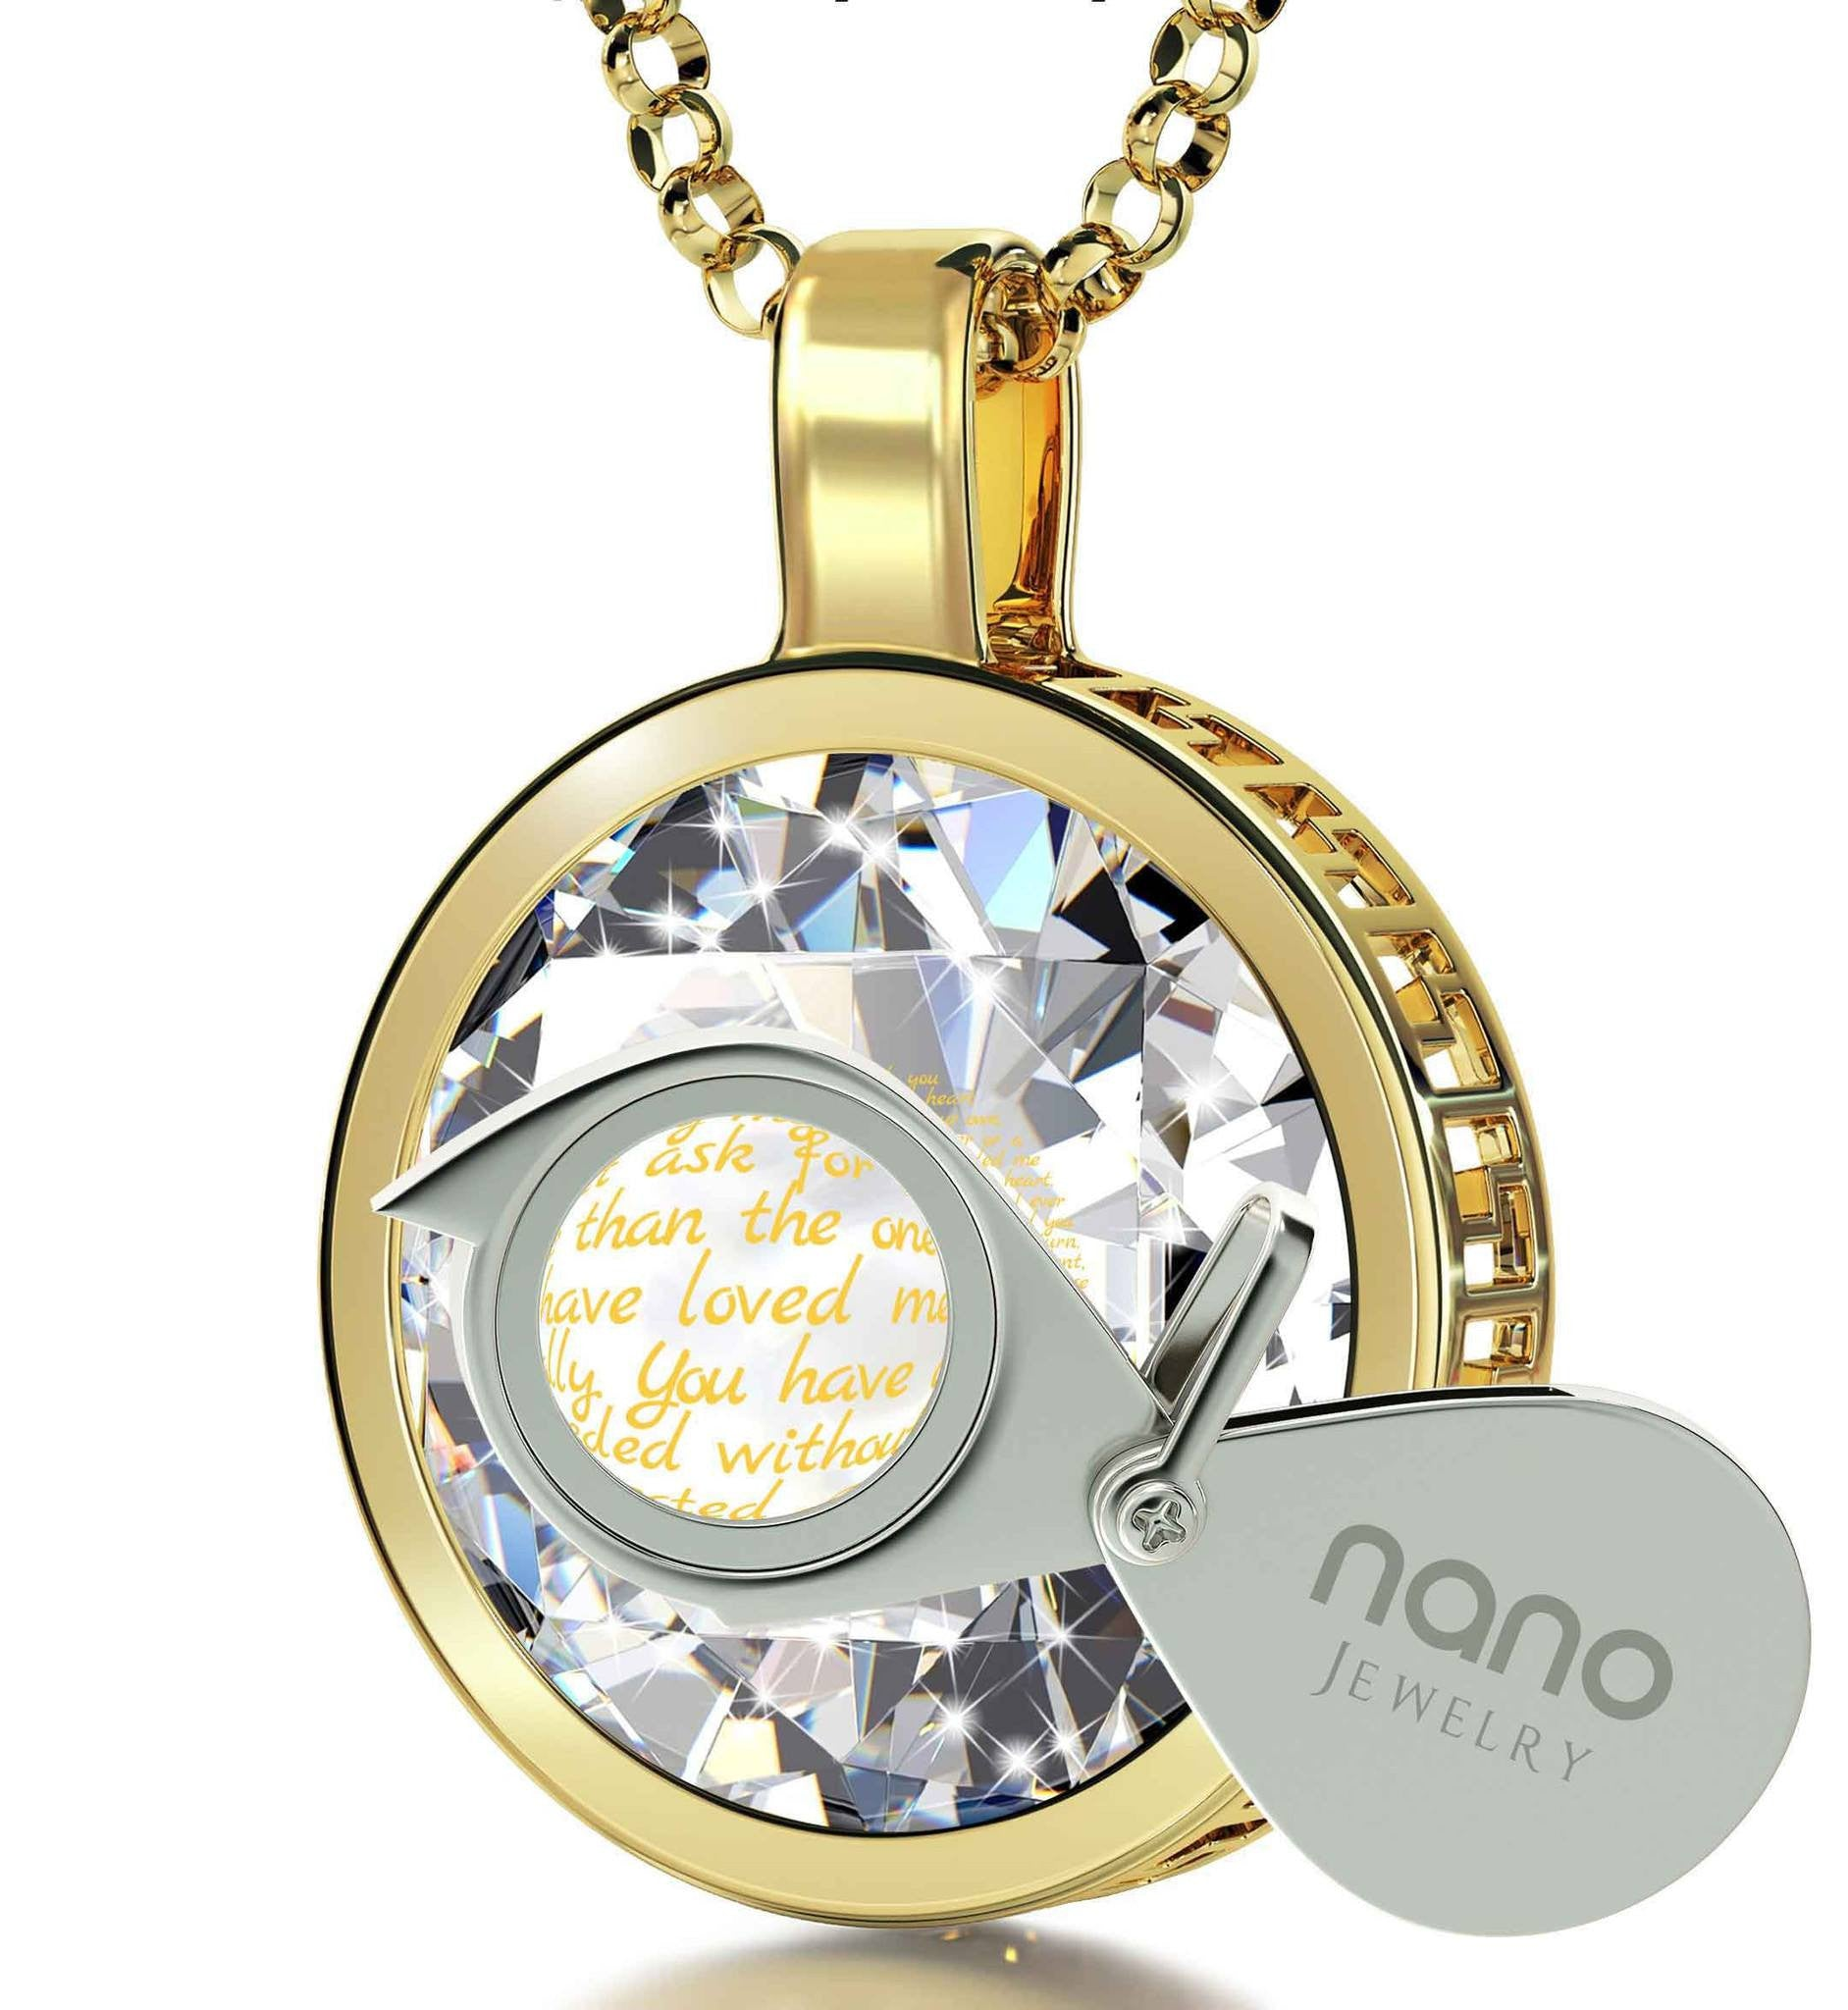 Special Mother's Day Gifts, 14k Gold Engraved Jewelry, Valentines Gift for Mom, by Nano